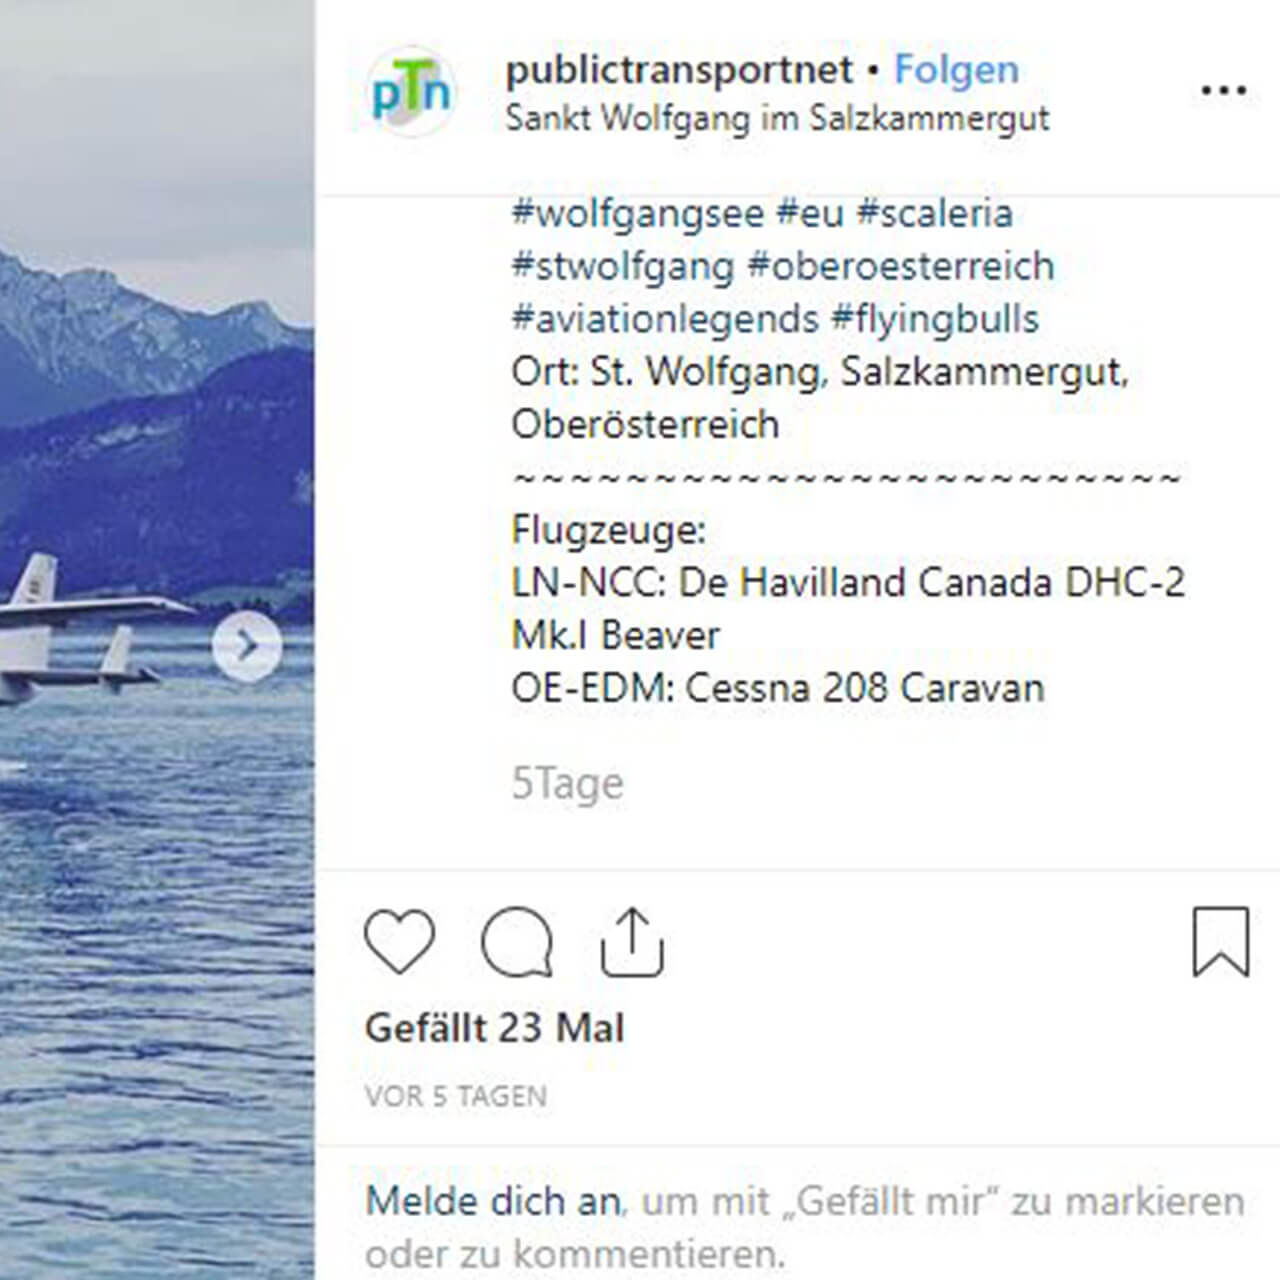 Instagram Publictransportnet